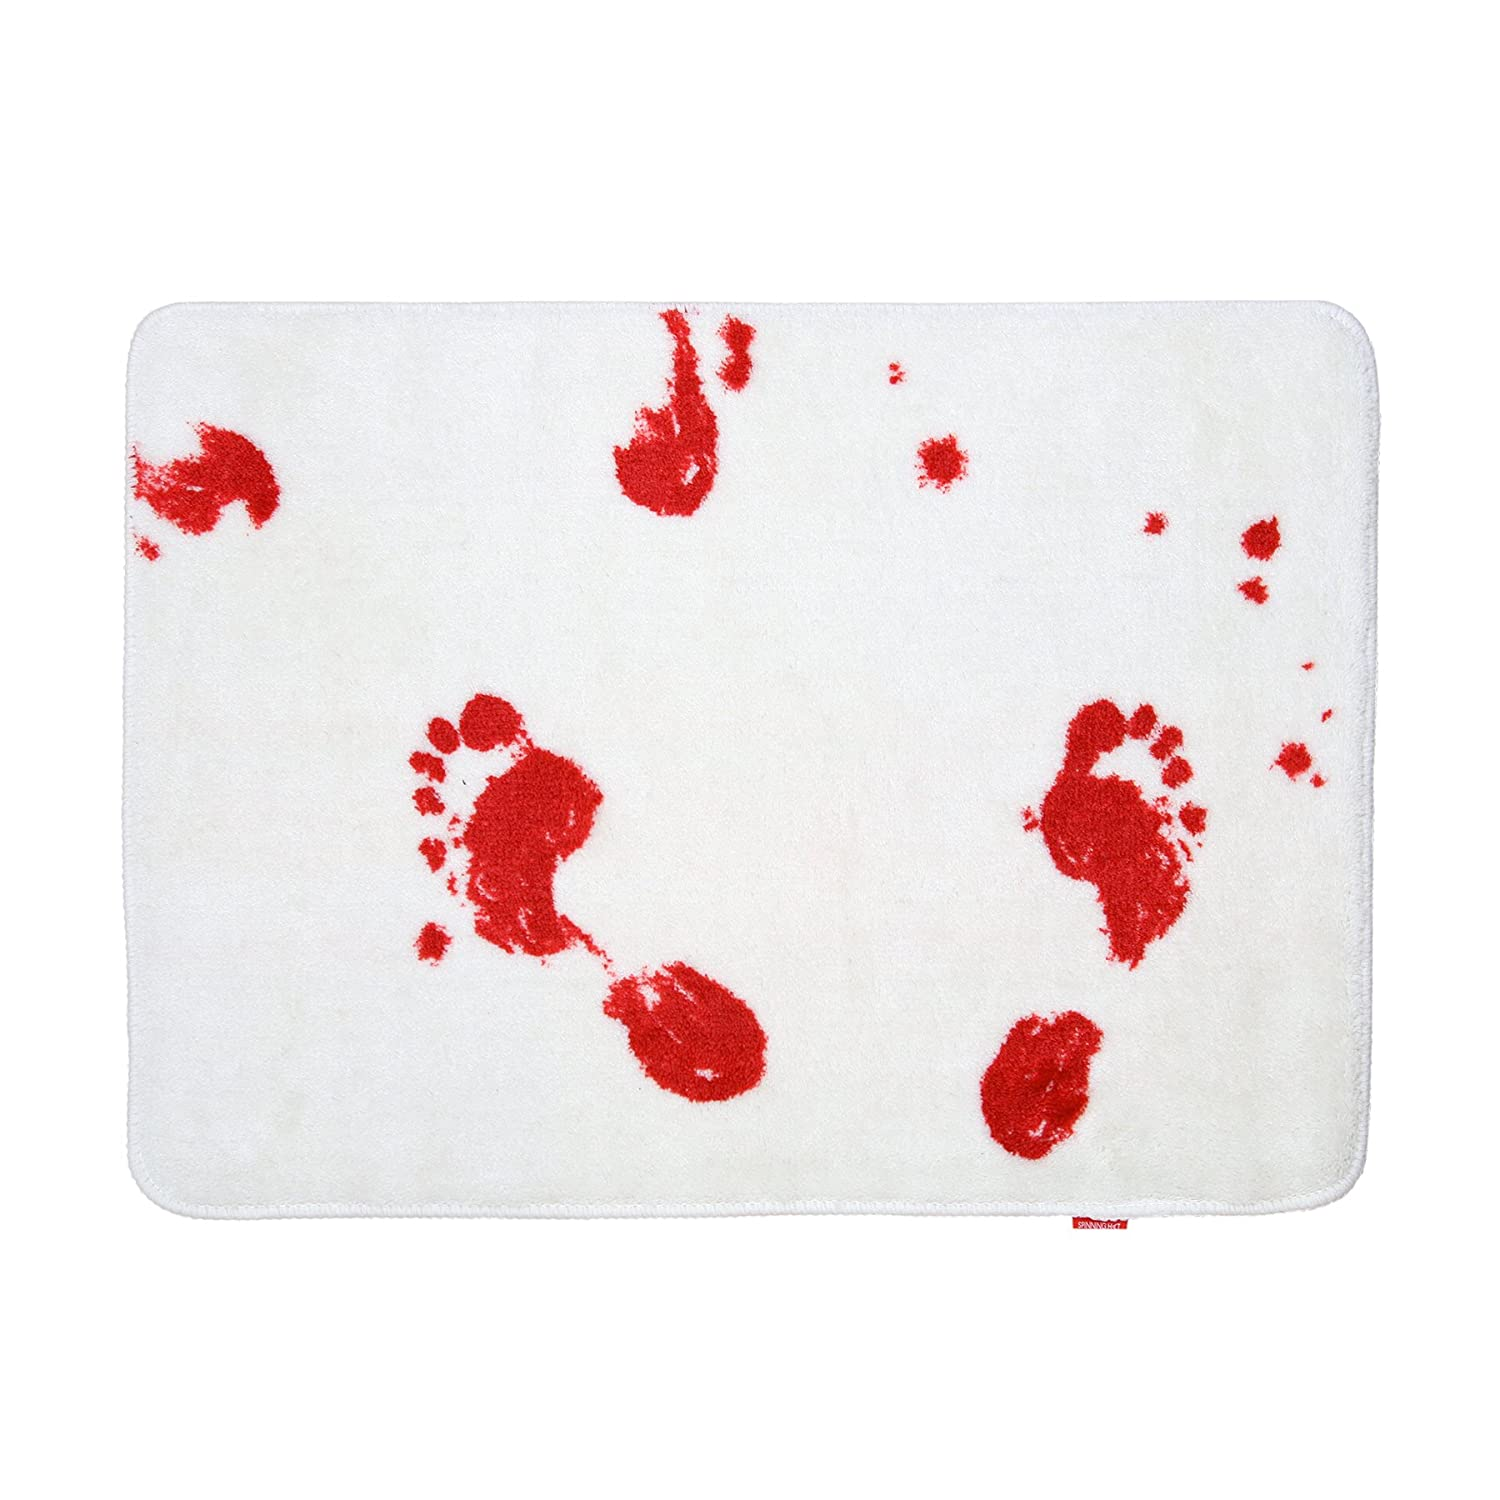 Very large bath rugs search - Spinning Hat Blood Bath Mat